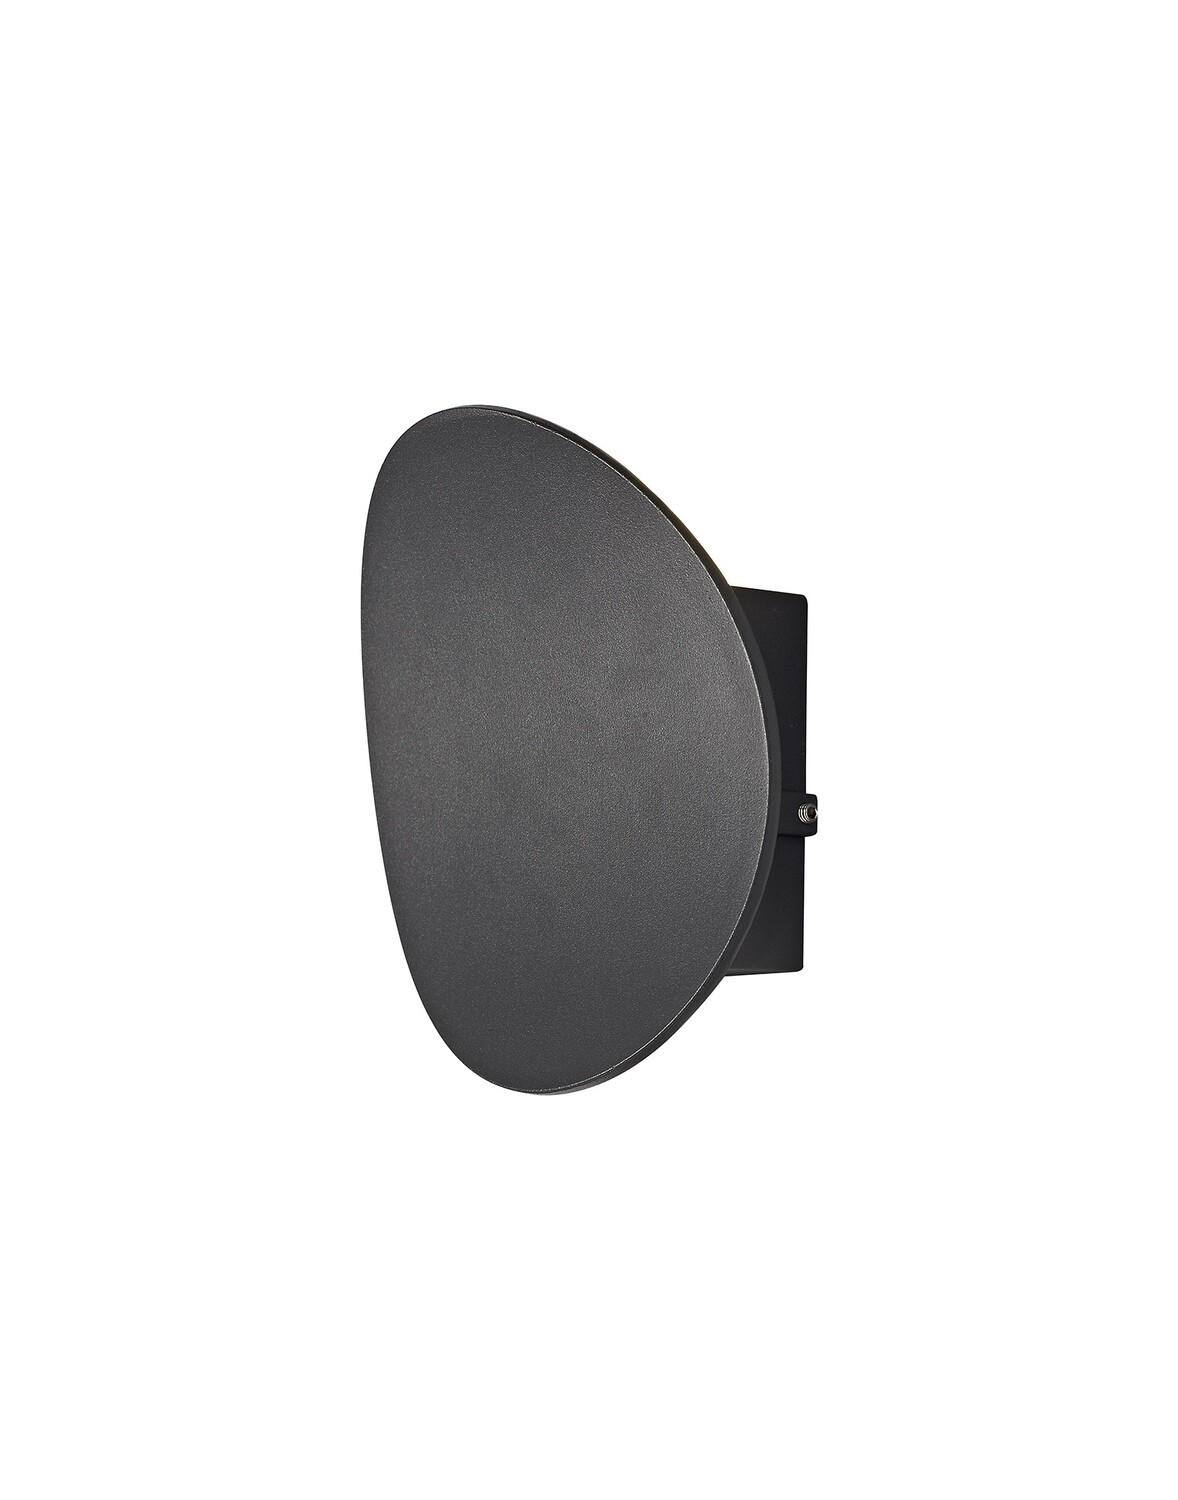 Janis Wall Lamp, 1 x 6W LED, 3000K, 700lm, IP54, Anthracite